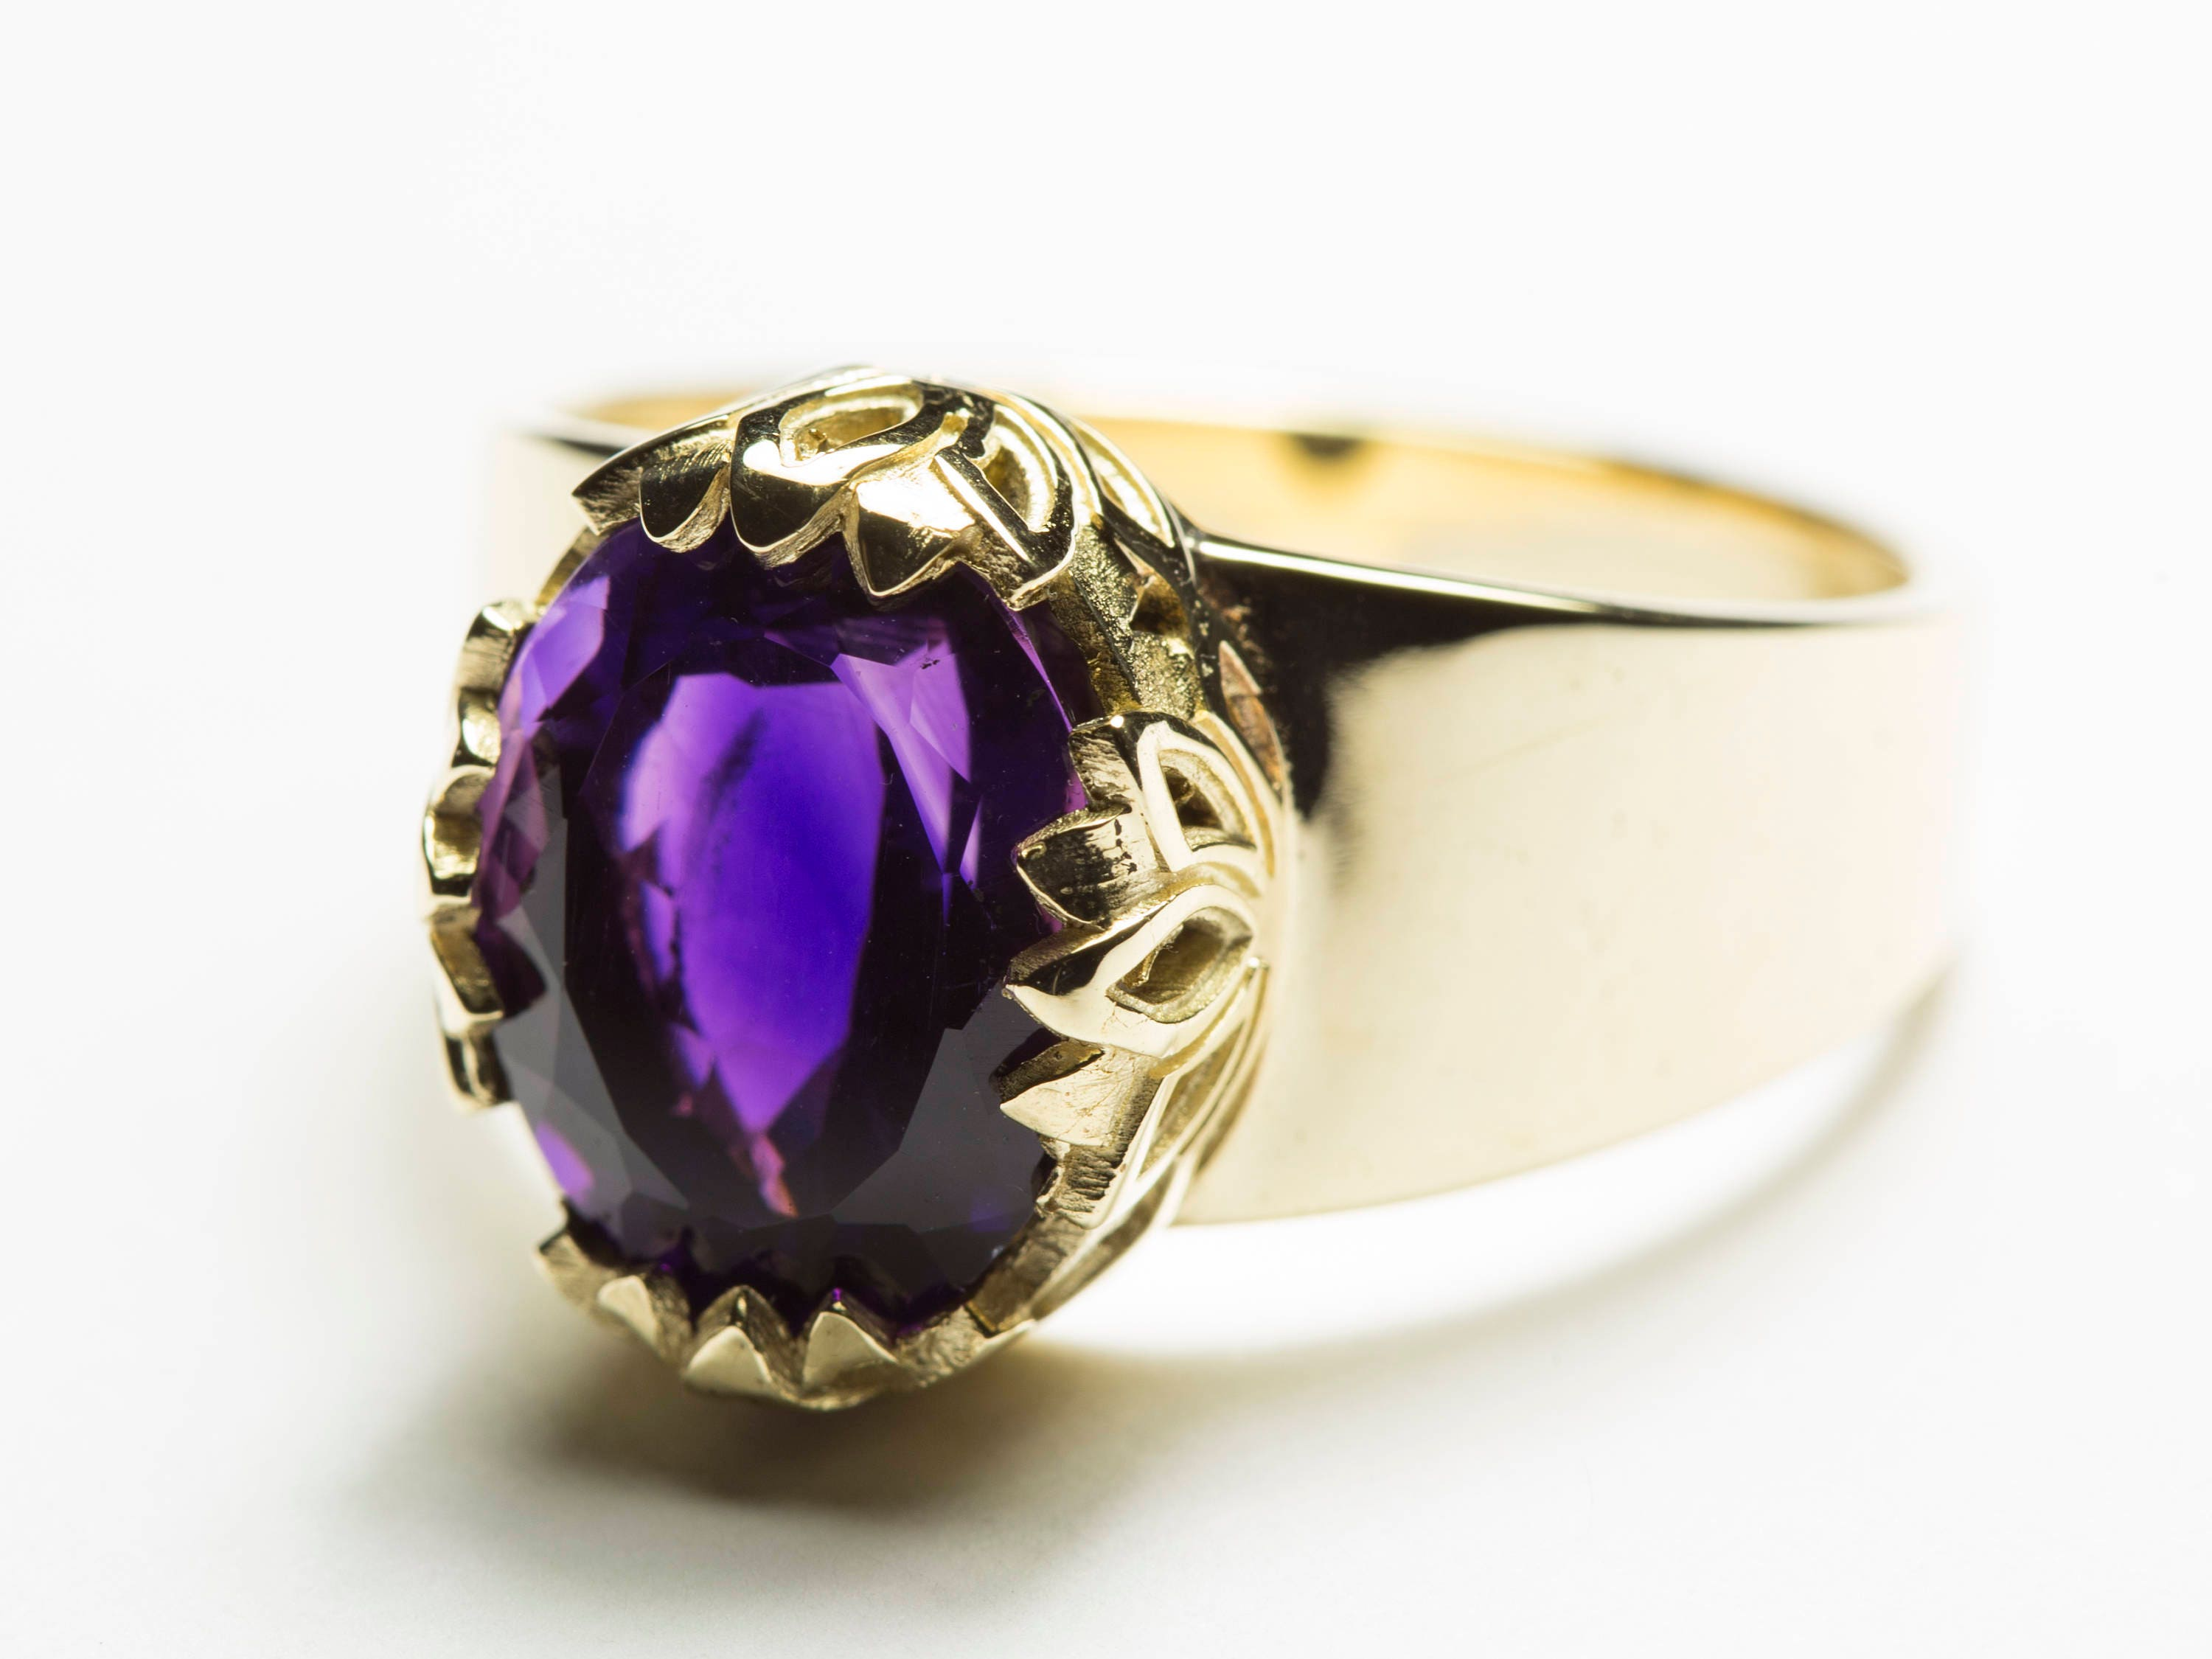 rings in engagement amethist amethyst elongated pav cushion white ring green and gold diamond image